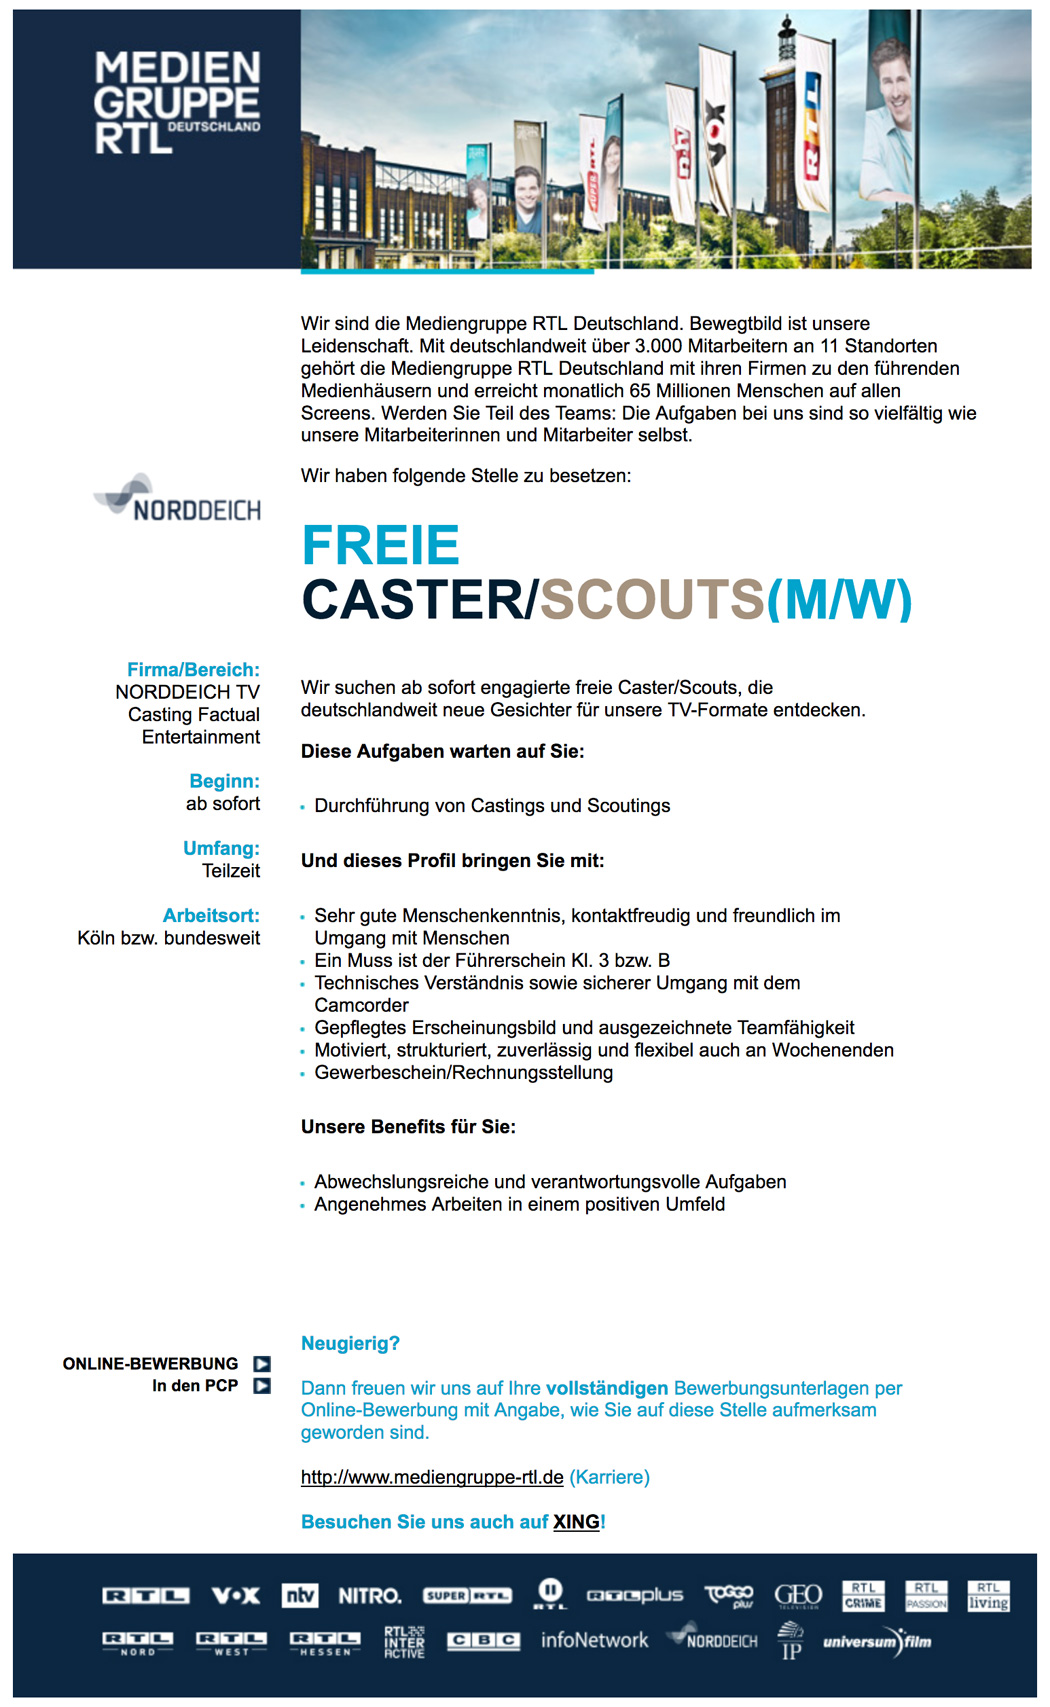 Freie Caster / Scouts (m/w) (Norddeich TV)